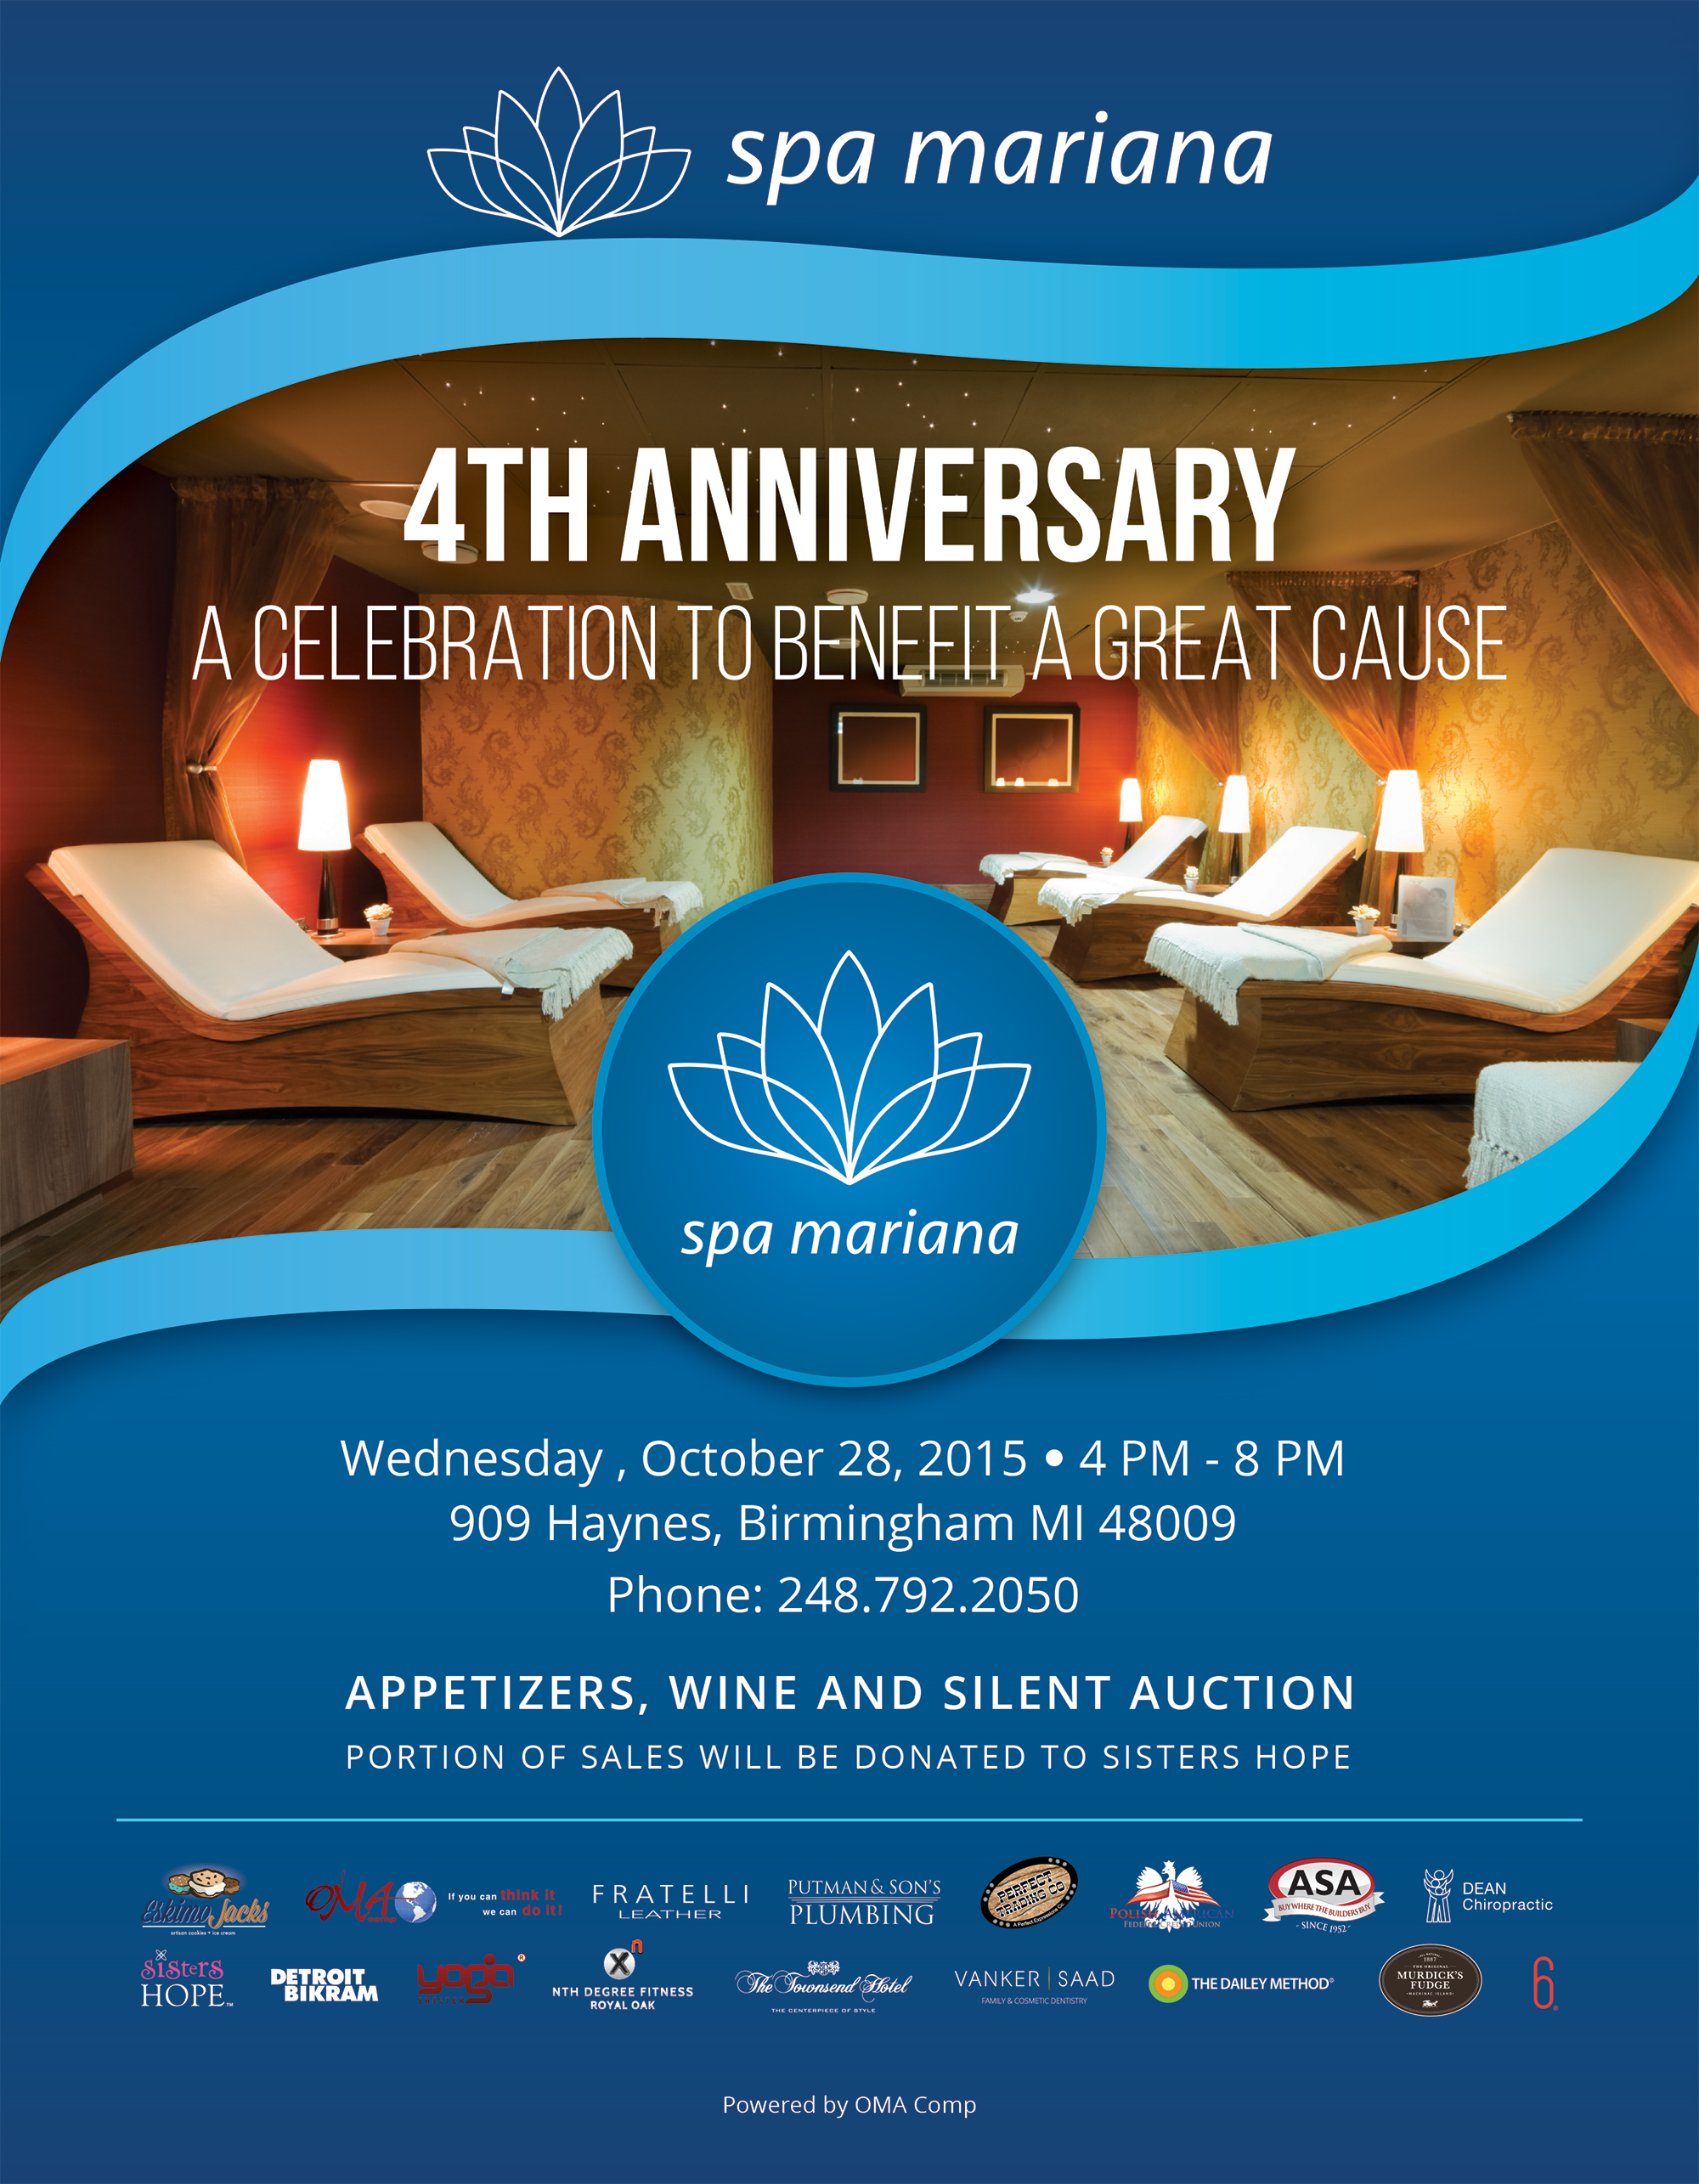 Spa Mariana 4th Anniversary 2015 Today